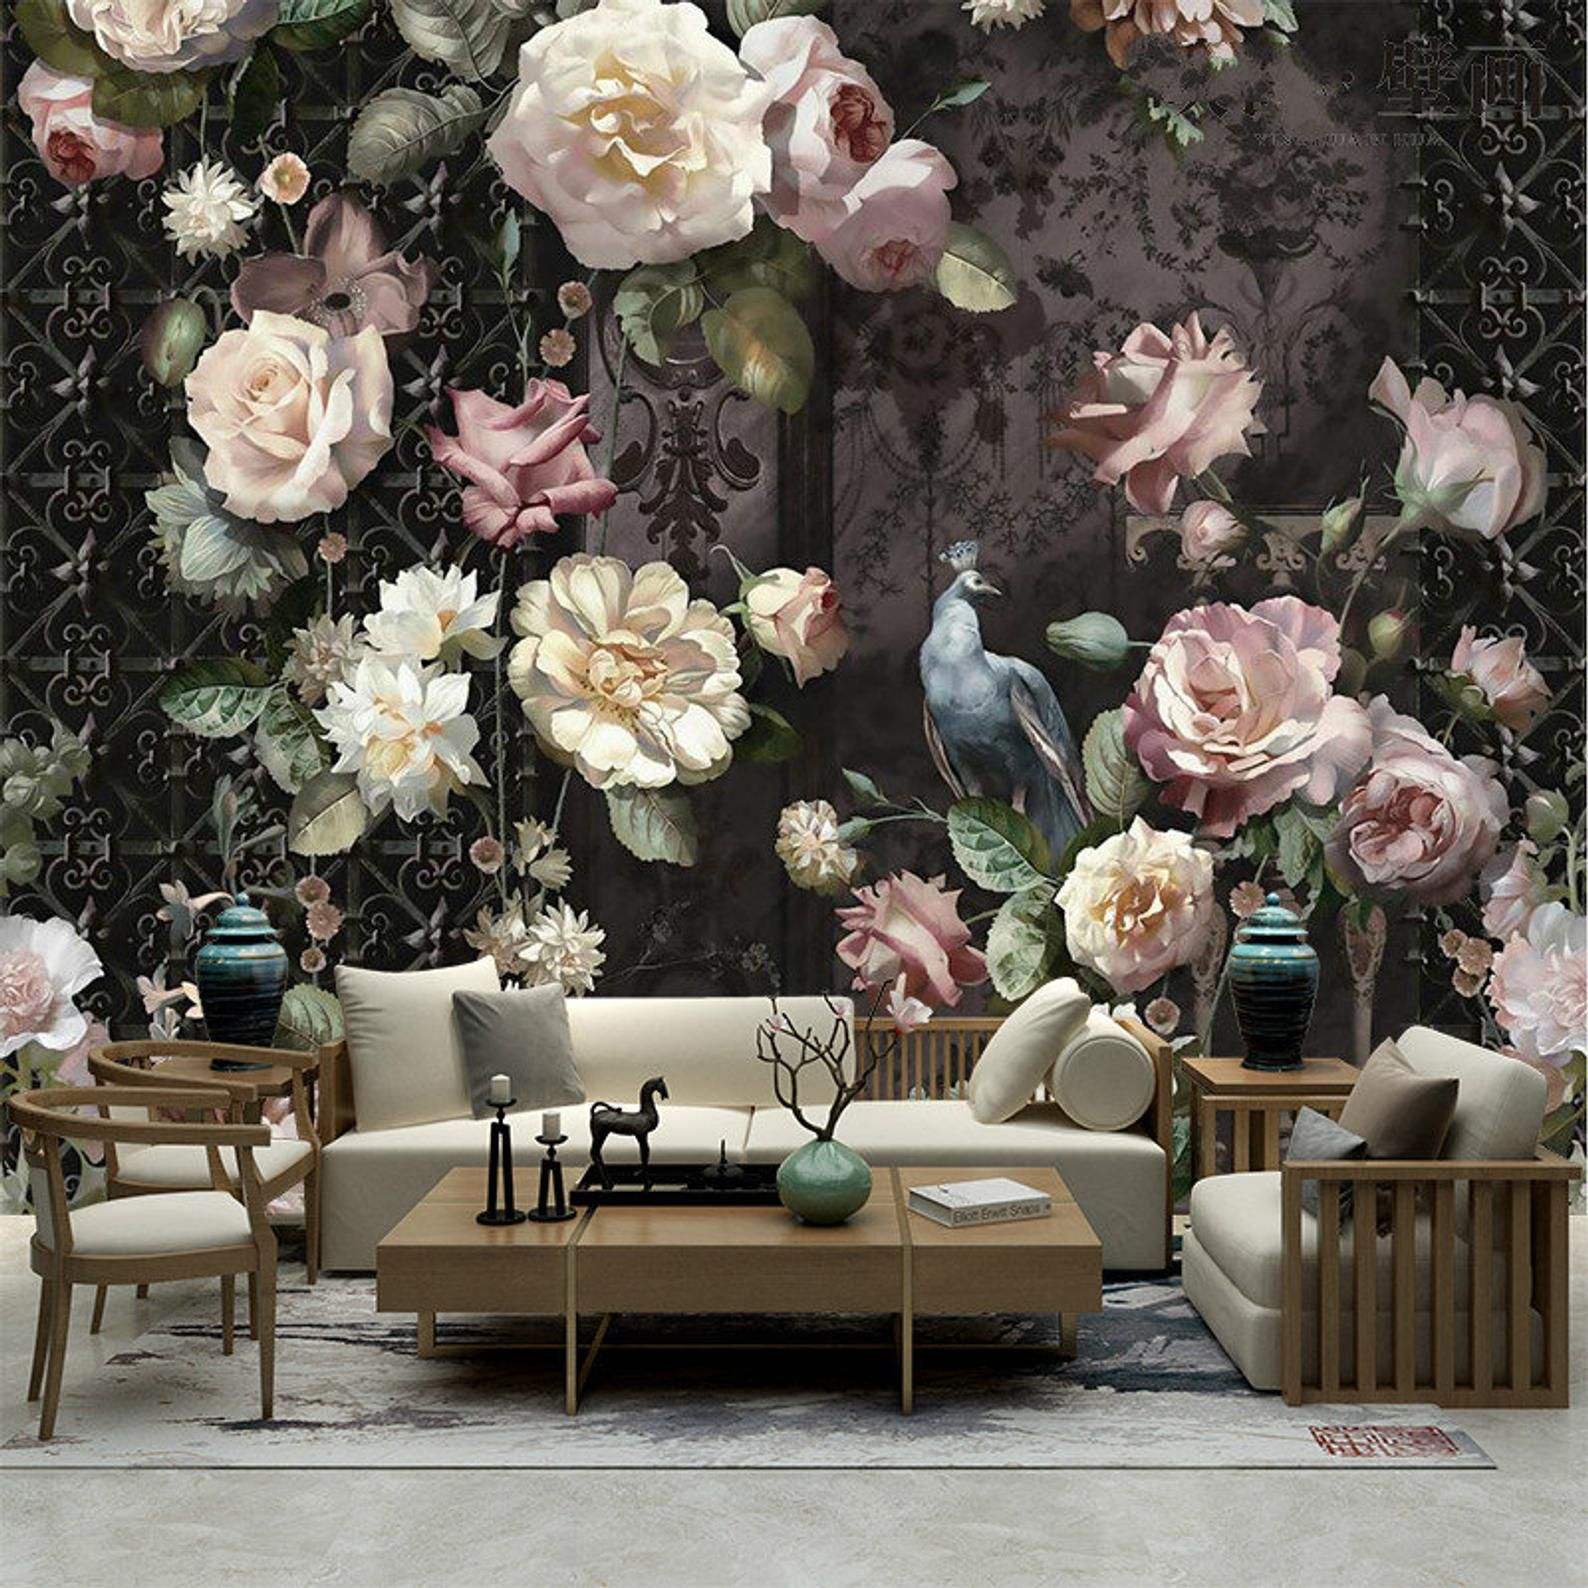 Oil Painting Dutch Victorian Flowers Floral Wallpaper Wall